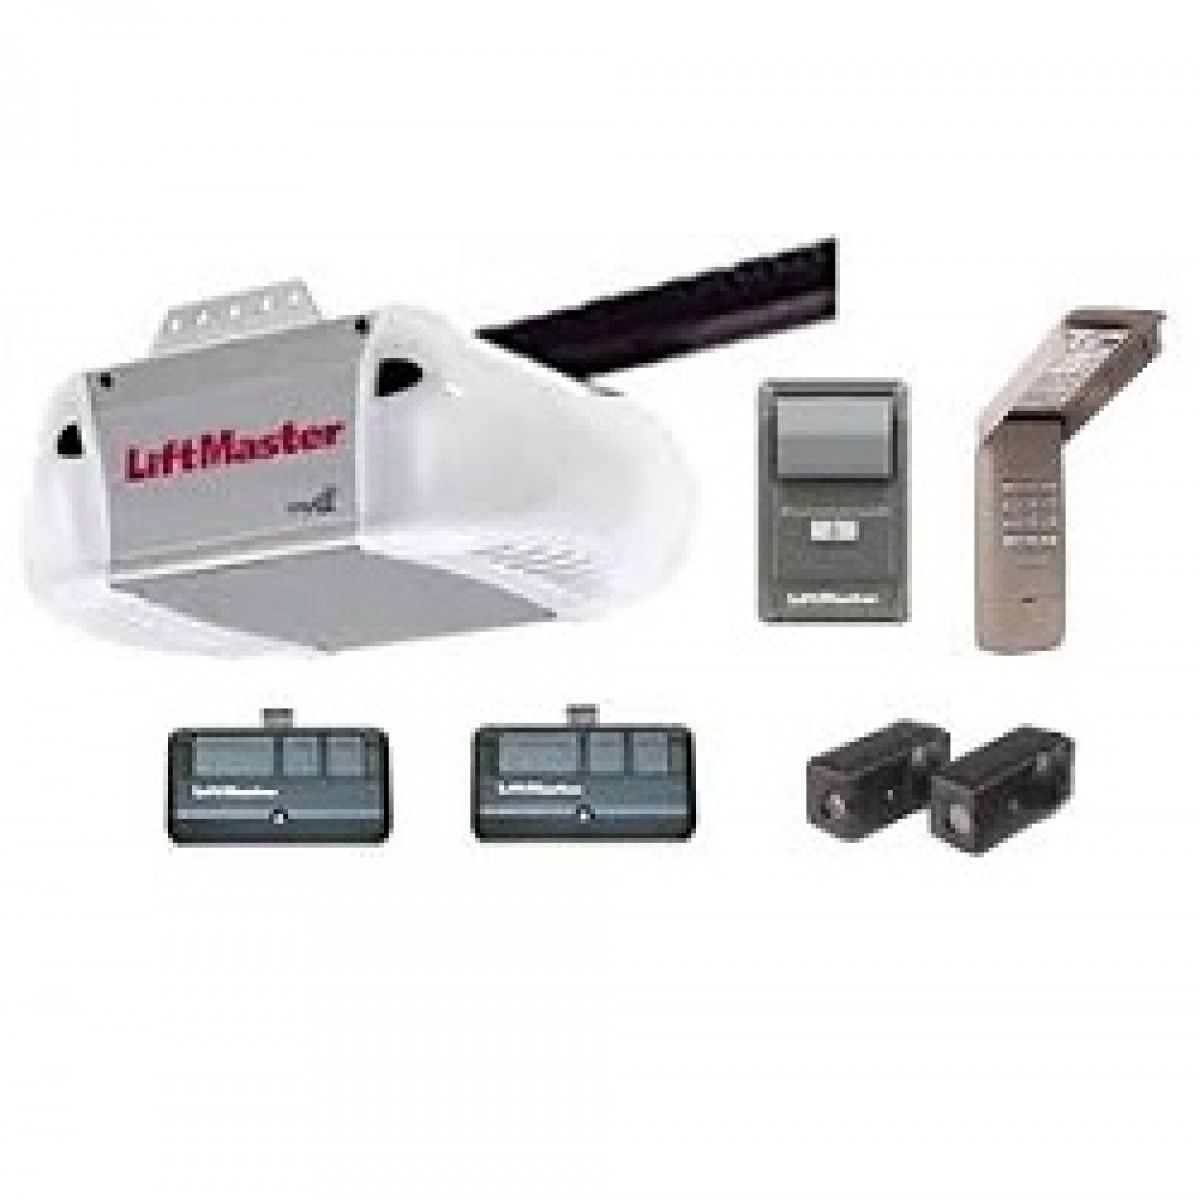 Liftmaster 8365 267 Security 2 0 1 2 Hp Ac Chain Drive Liftmaster Liftmaster Garage Door Opener Garage Door Opener